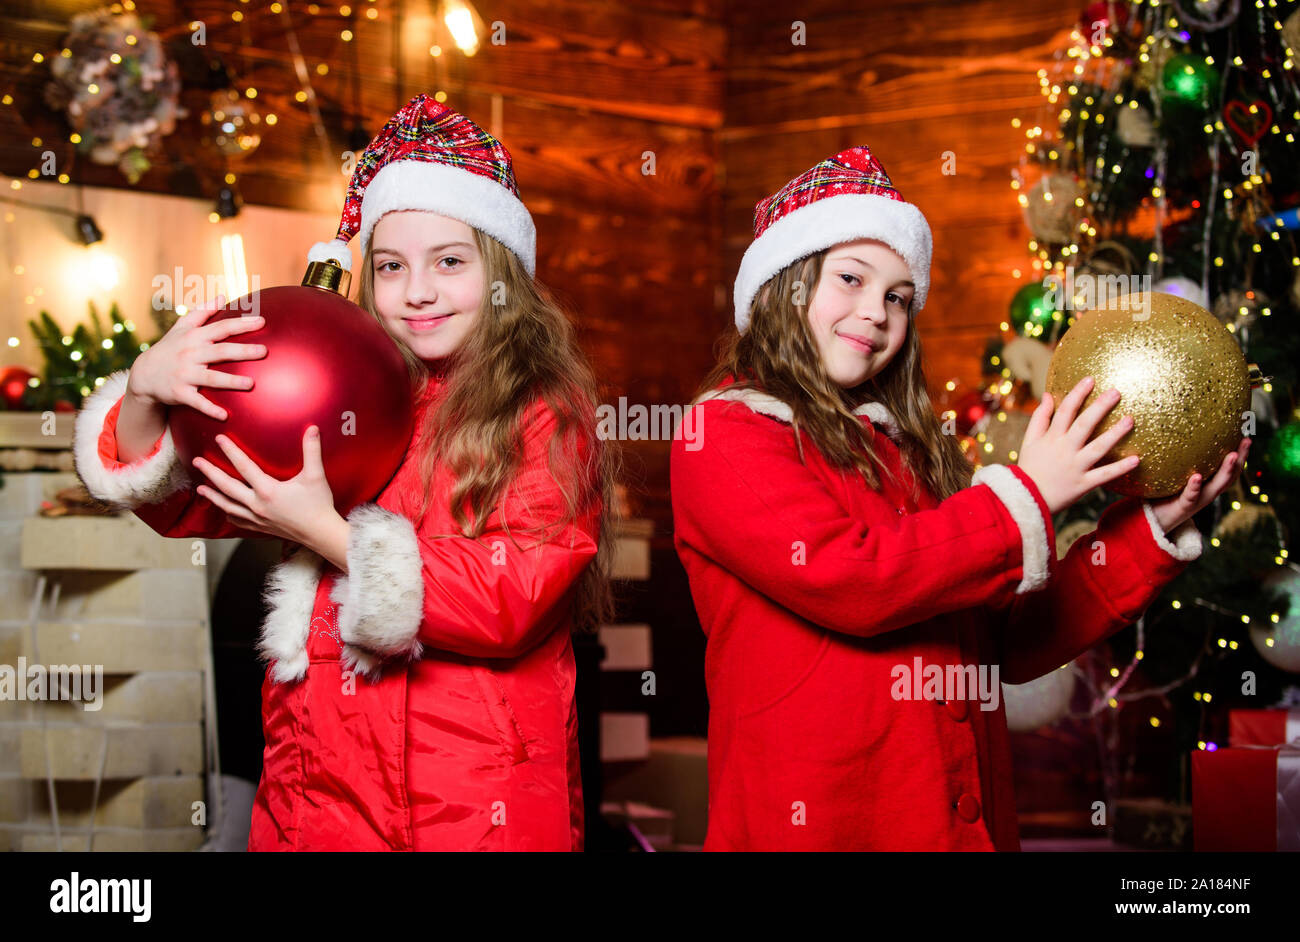 Festive Atmosphere Christmas Day Togetherness Concept Decorate Christmas Tree Together Girls Sisters Santa Claus Costumes Kids Lovely Friends Meet Christmas Holiday Family Celebrate Christmas Stock Photo Alamy